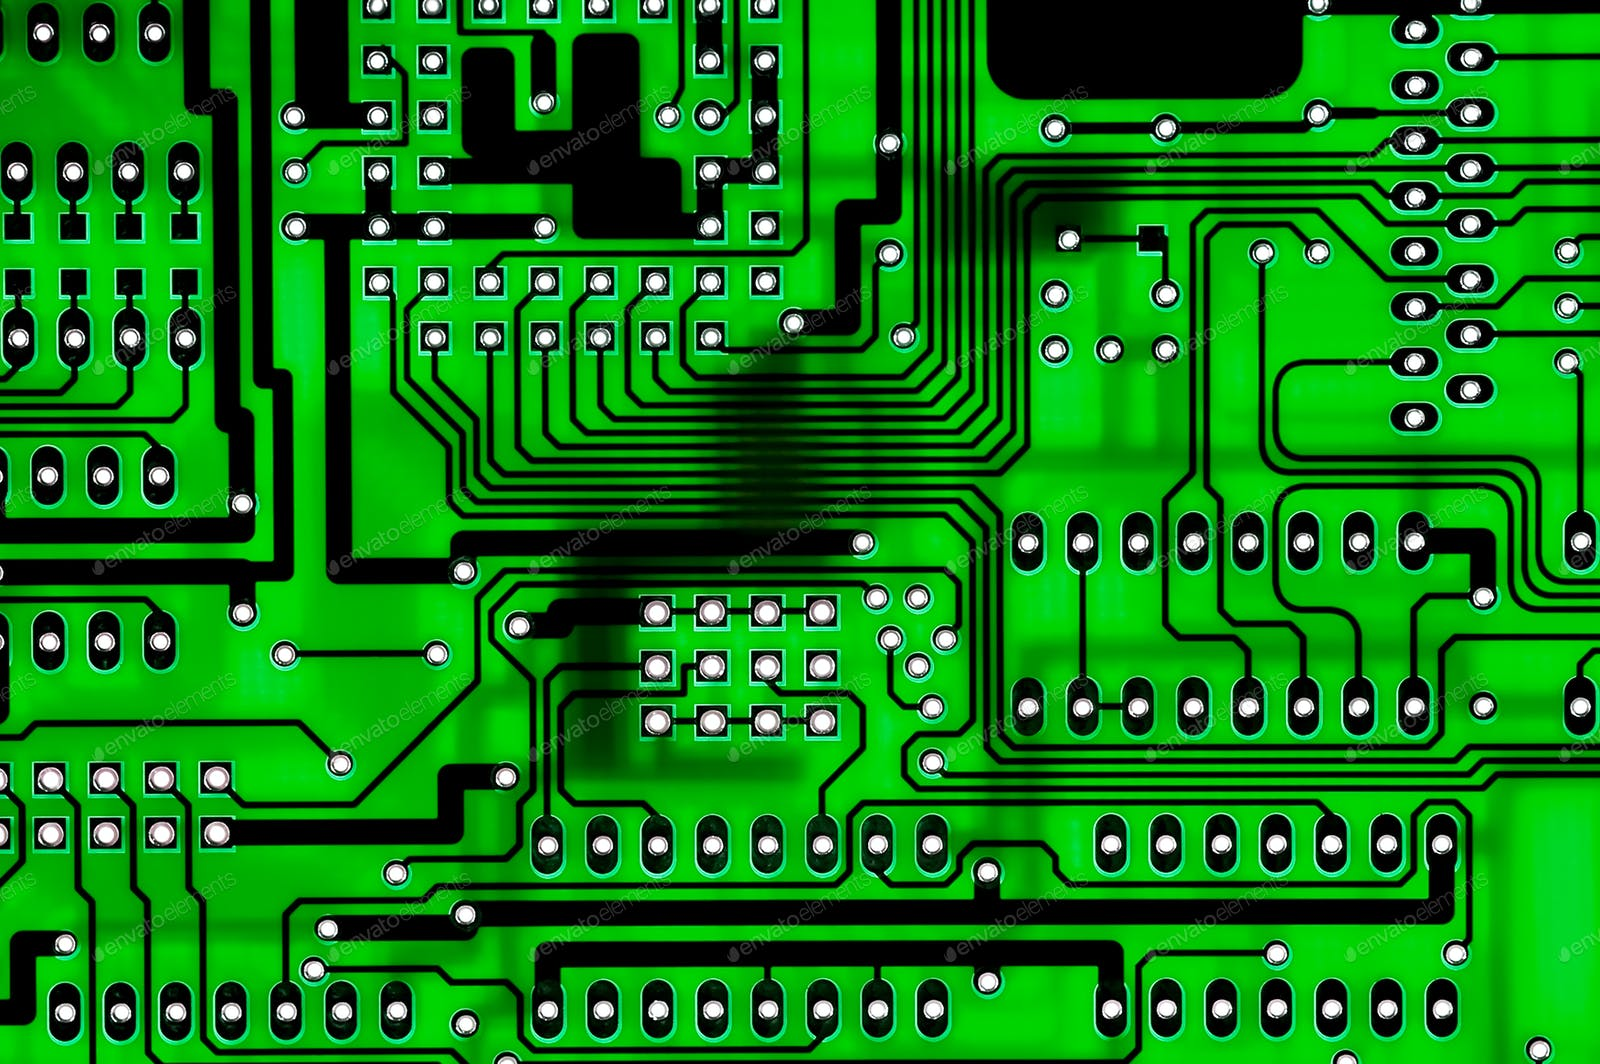 Download 3 Circuit Board Photos Envato Elements Computer Code And Background Illustration